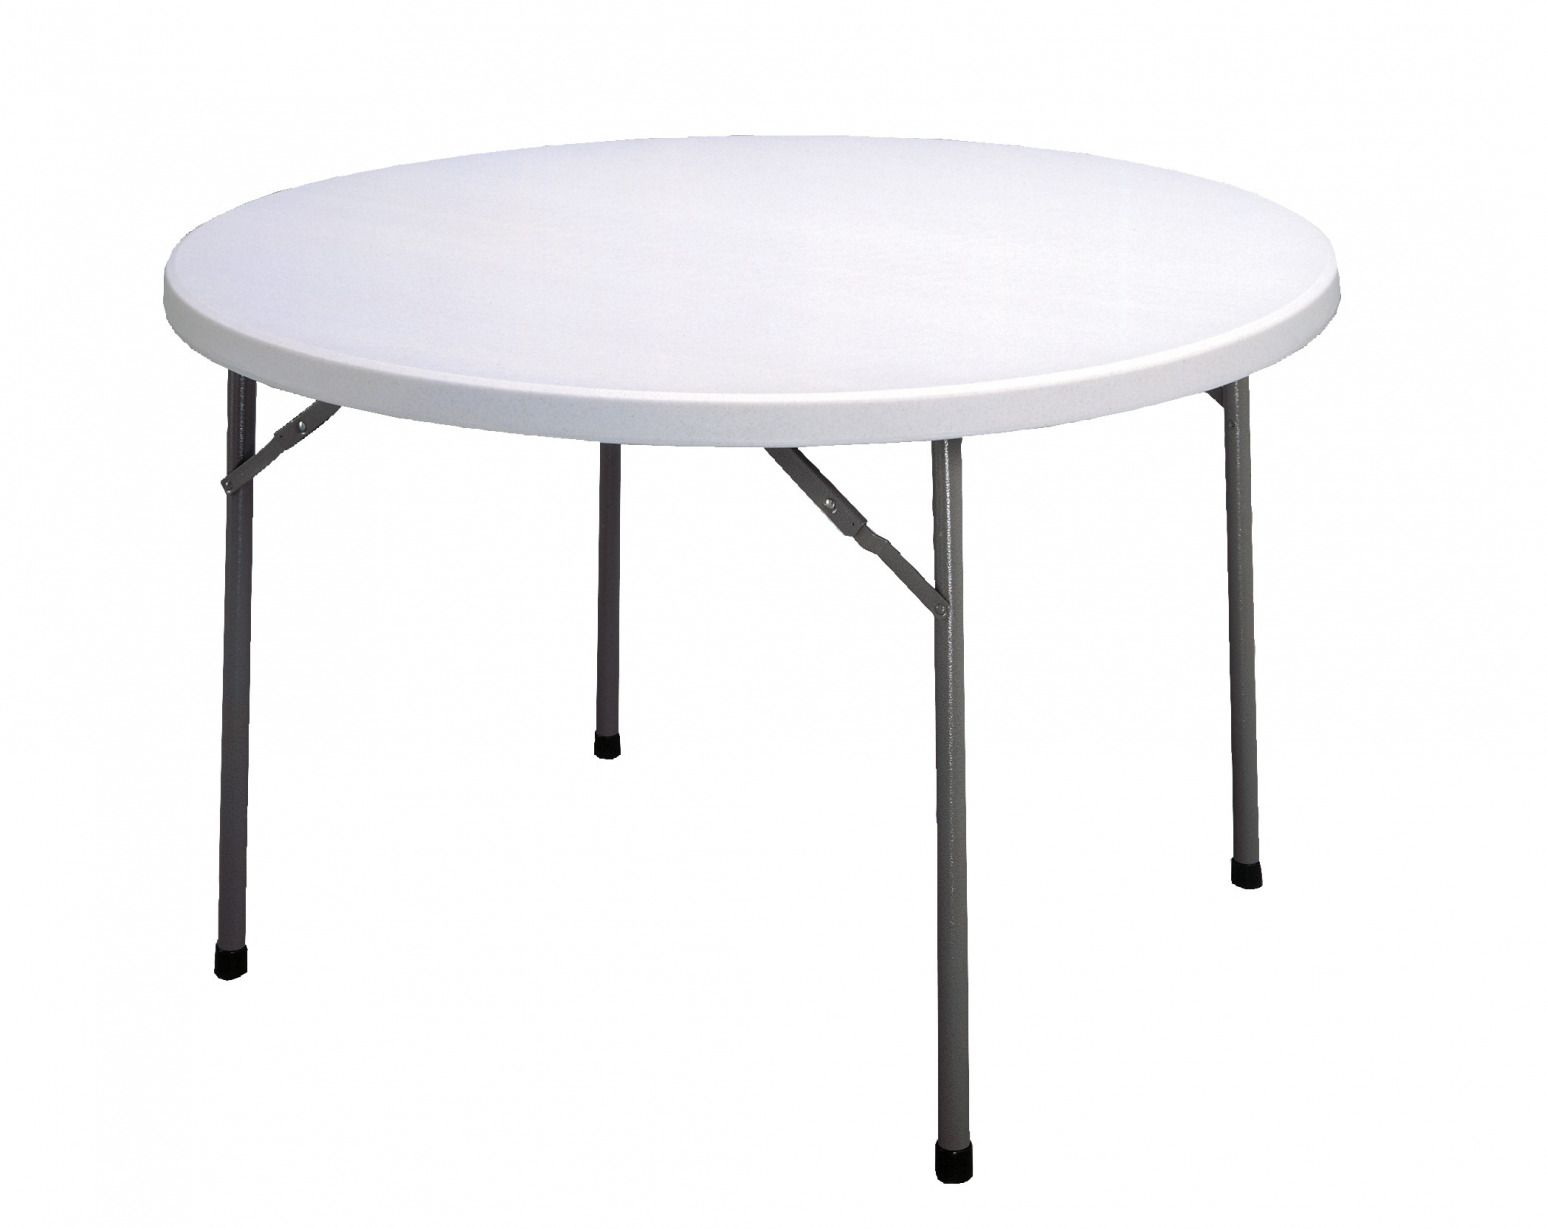 Merveilleux 100+ Round Folding Tables Costco   Cool Furniture Ideas Check More At Http:/